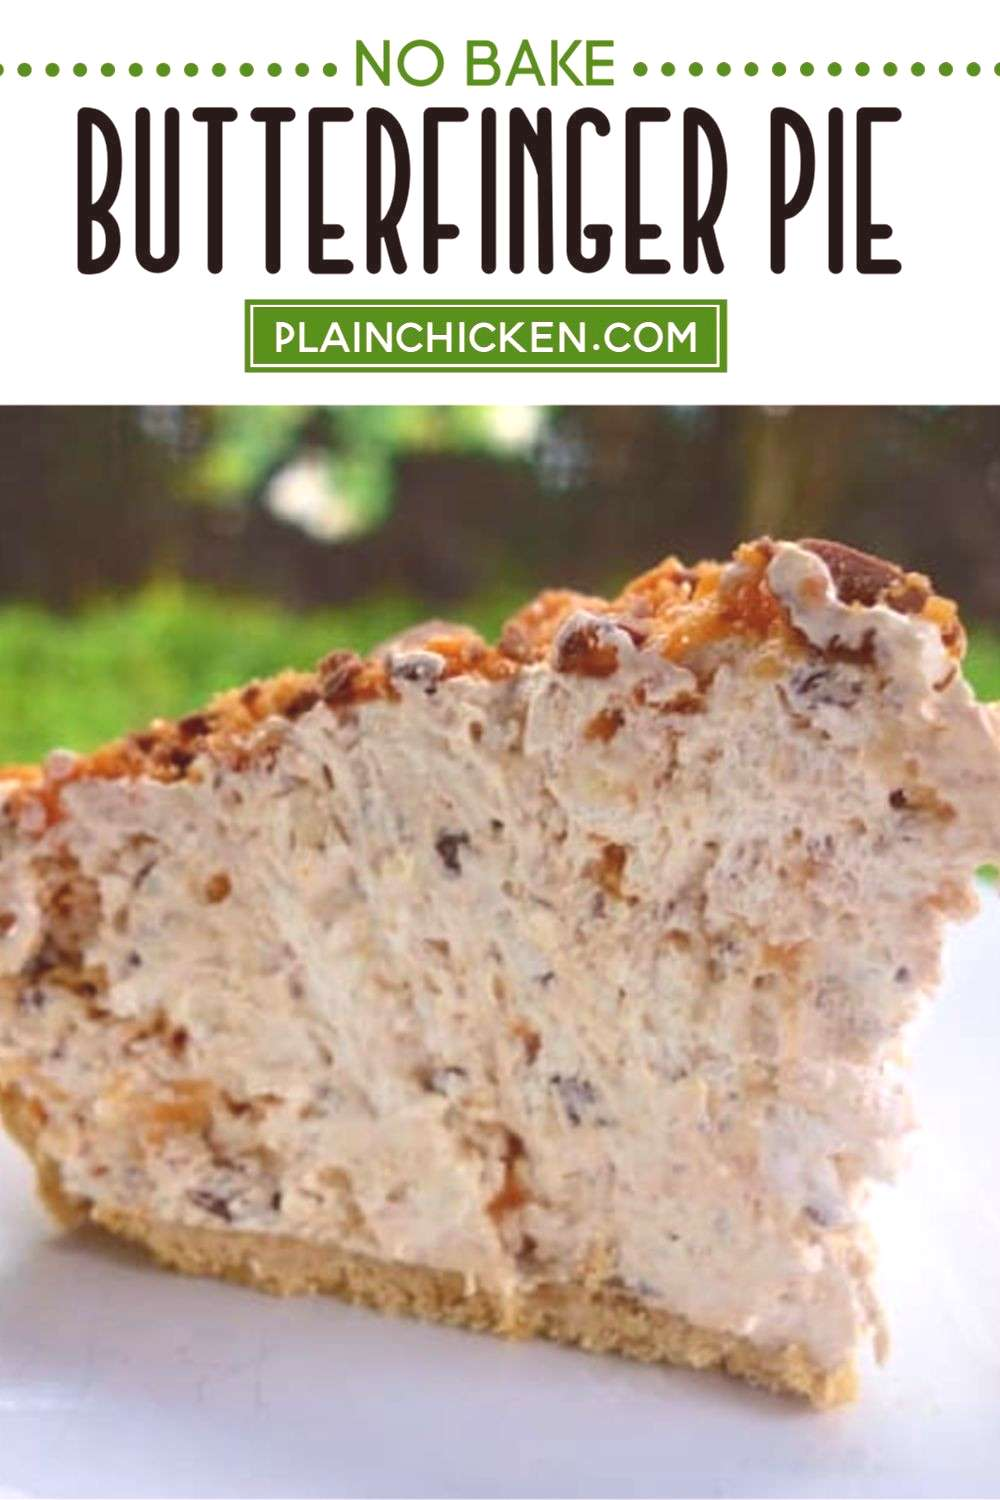 Butterfinger Pie No Bake Butterfinger Pie – NO BAKE! Only 4 ingredients and ready in minutes. T